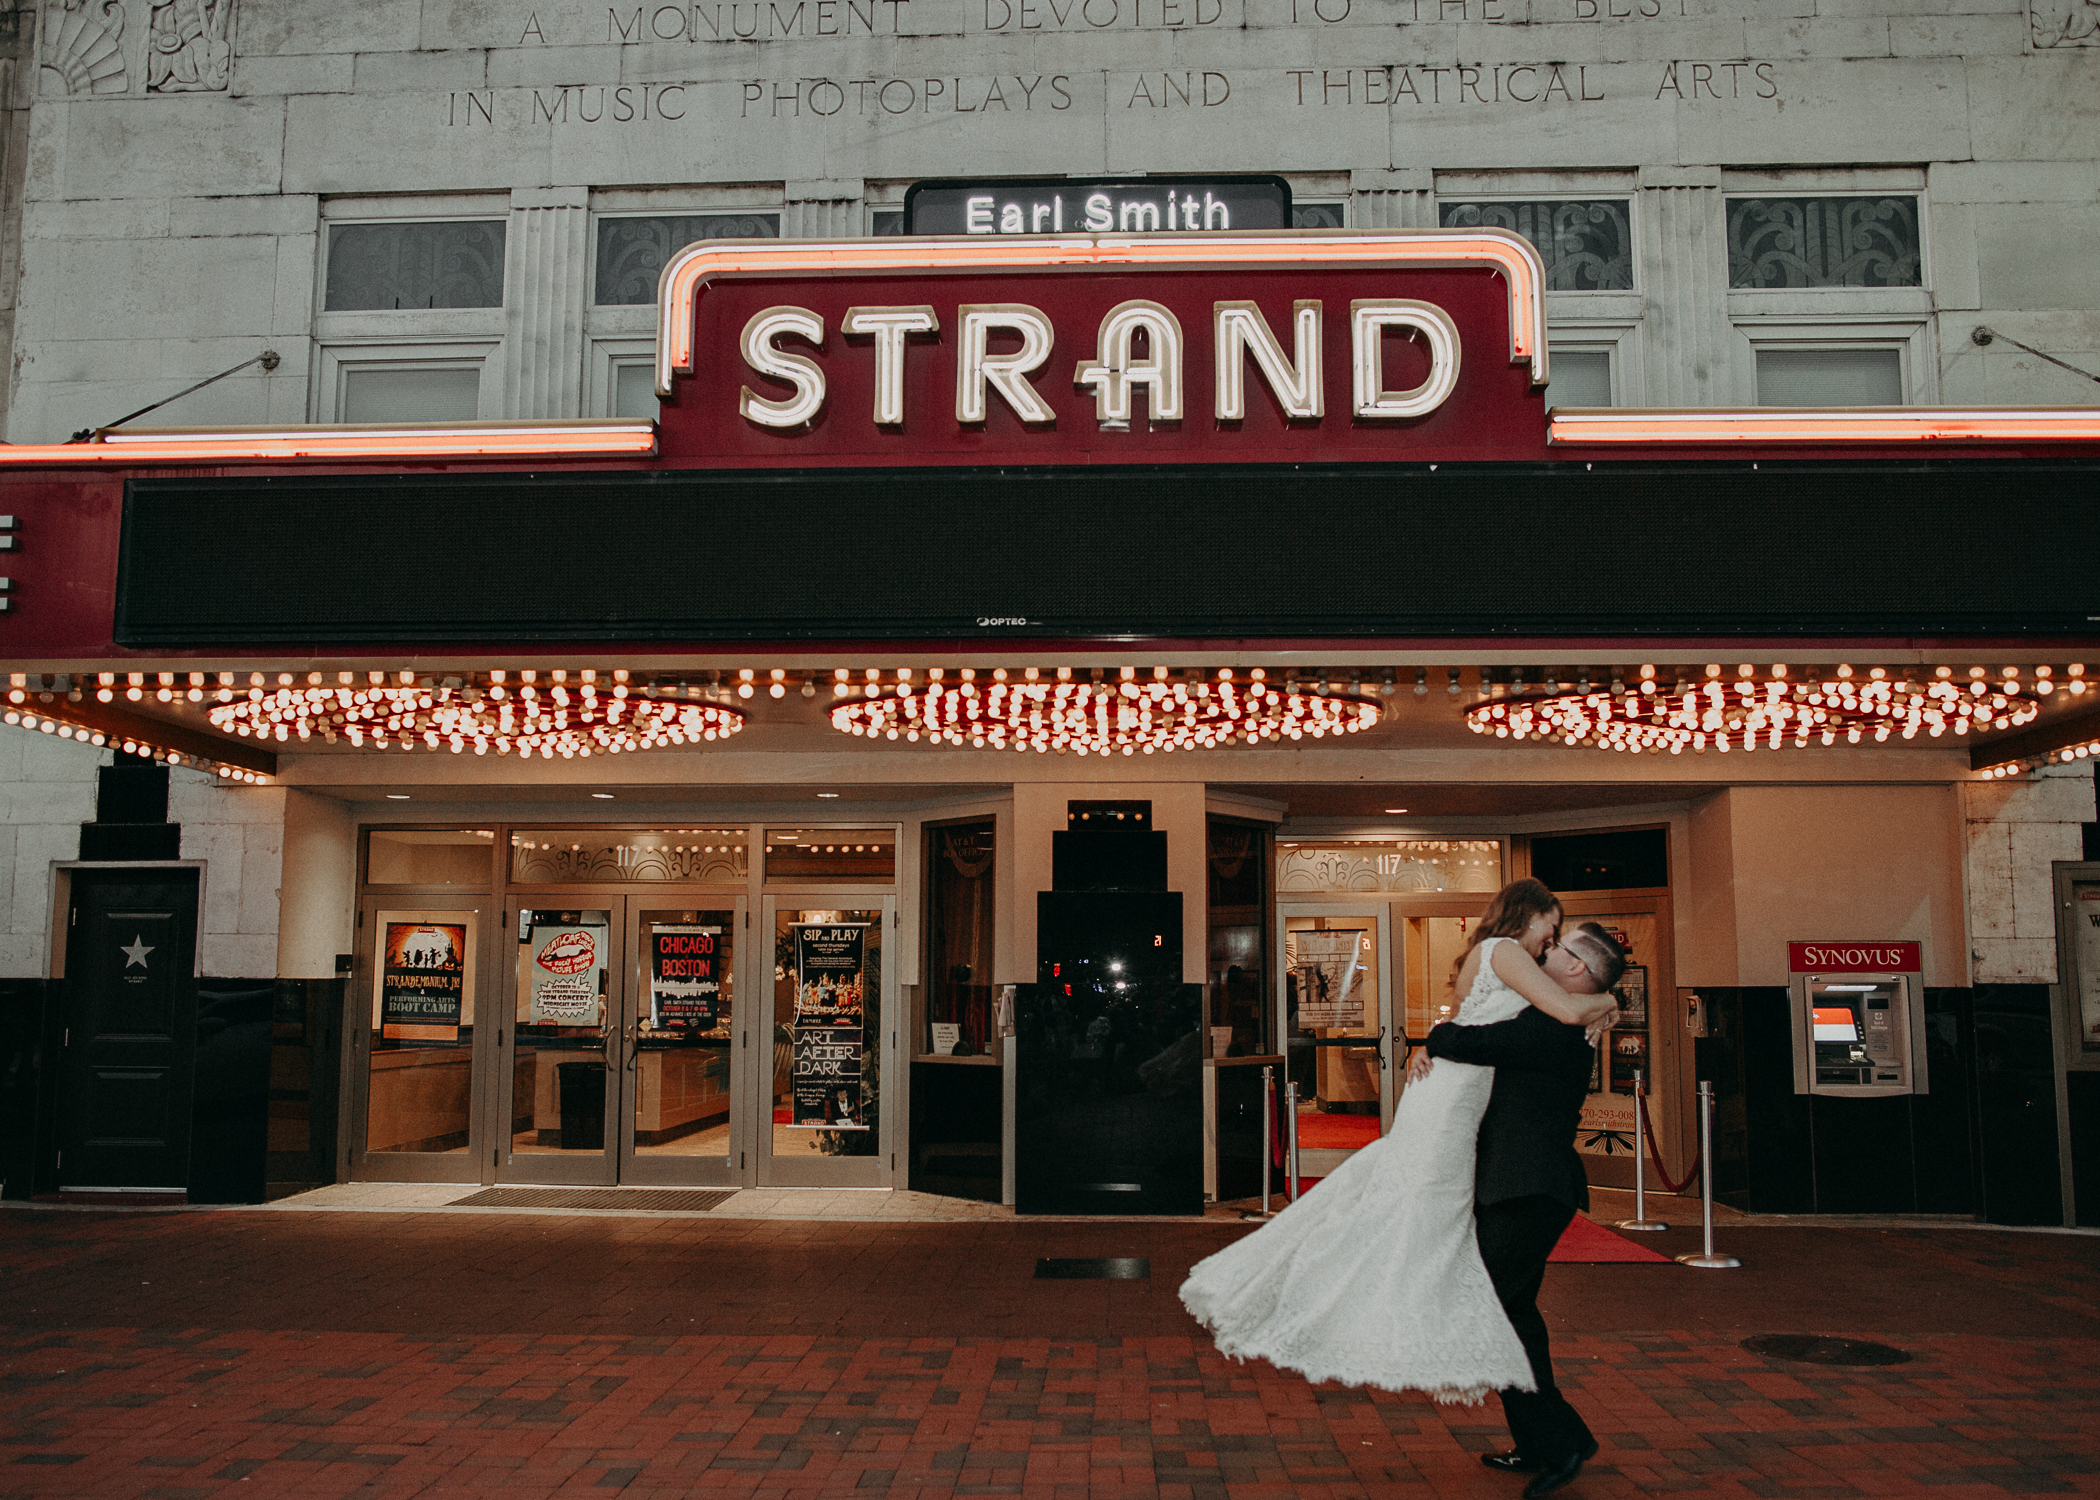 Allison and Billy - earlsmithstrand_marietta square georgia wedding photography-78.jpg